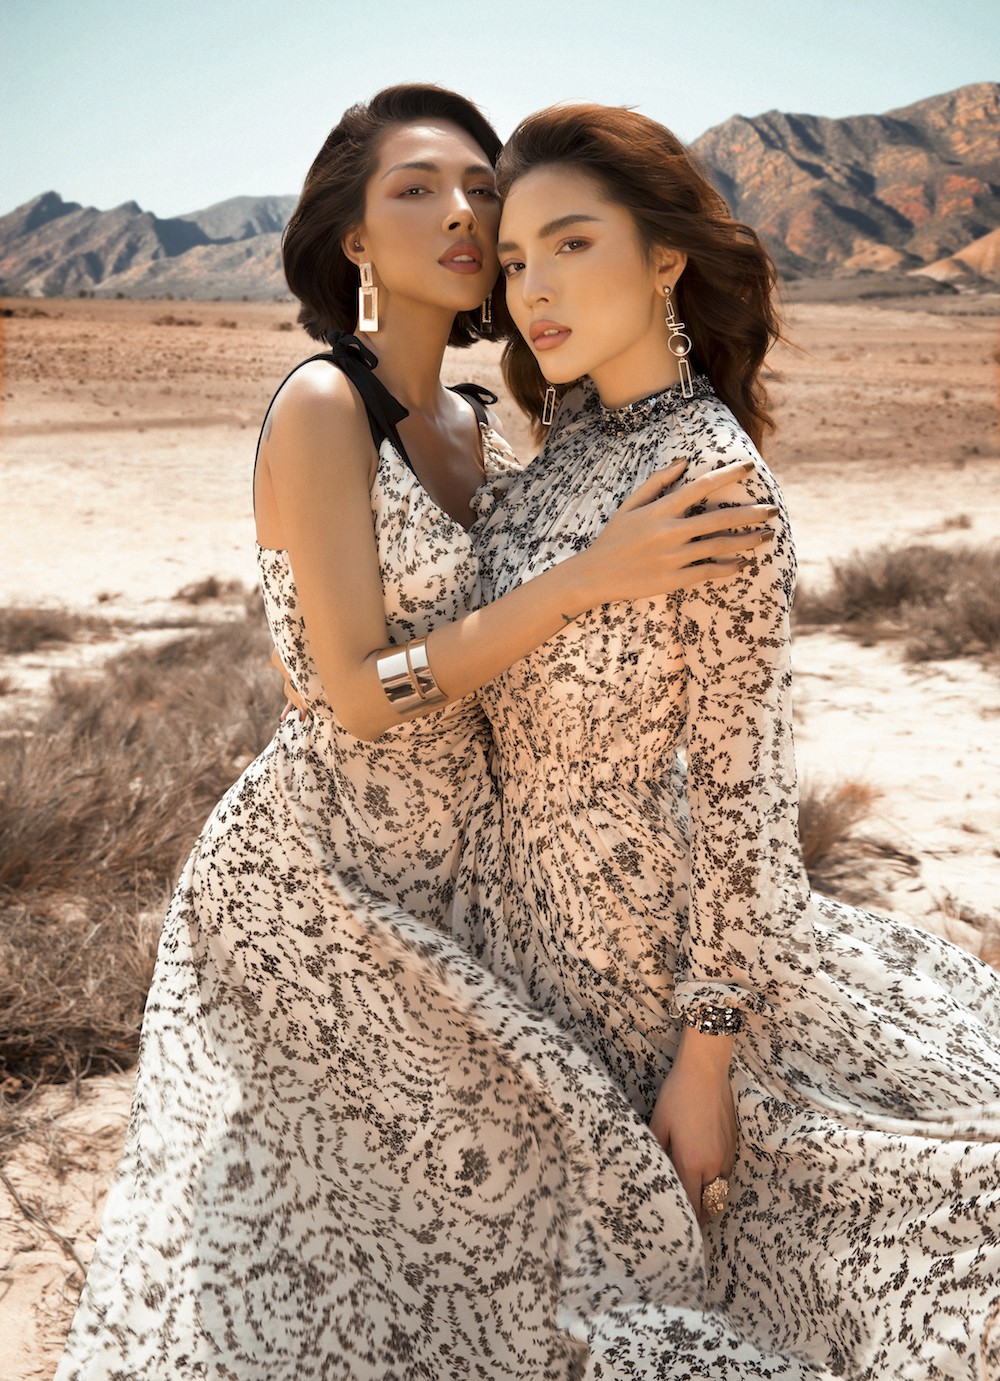 Ki Duyen and Minh Trieu became more and more attached and passionately accepted among the desert - Photo 8.